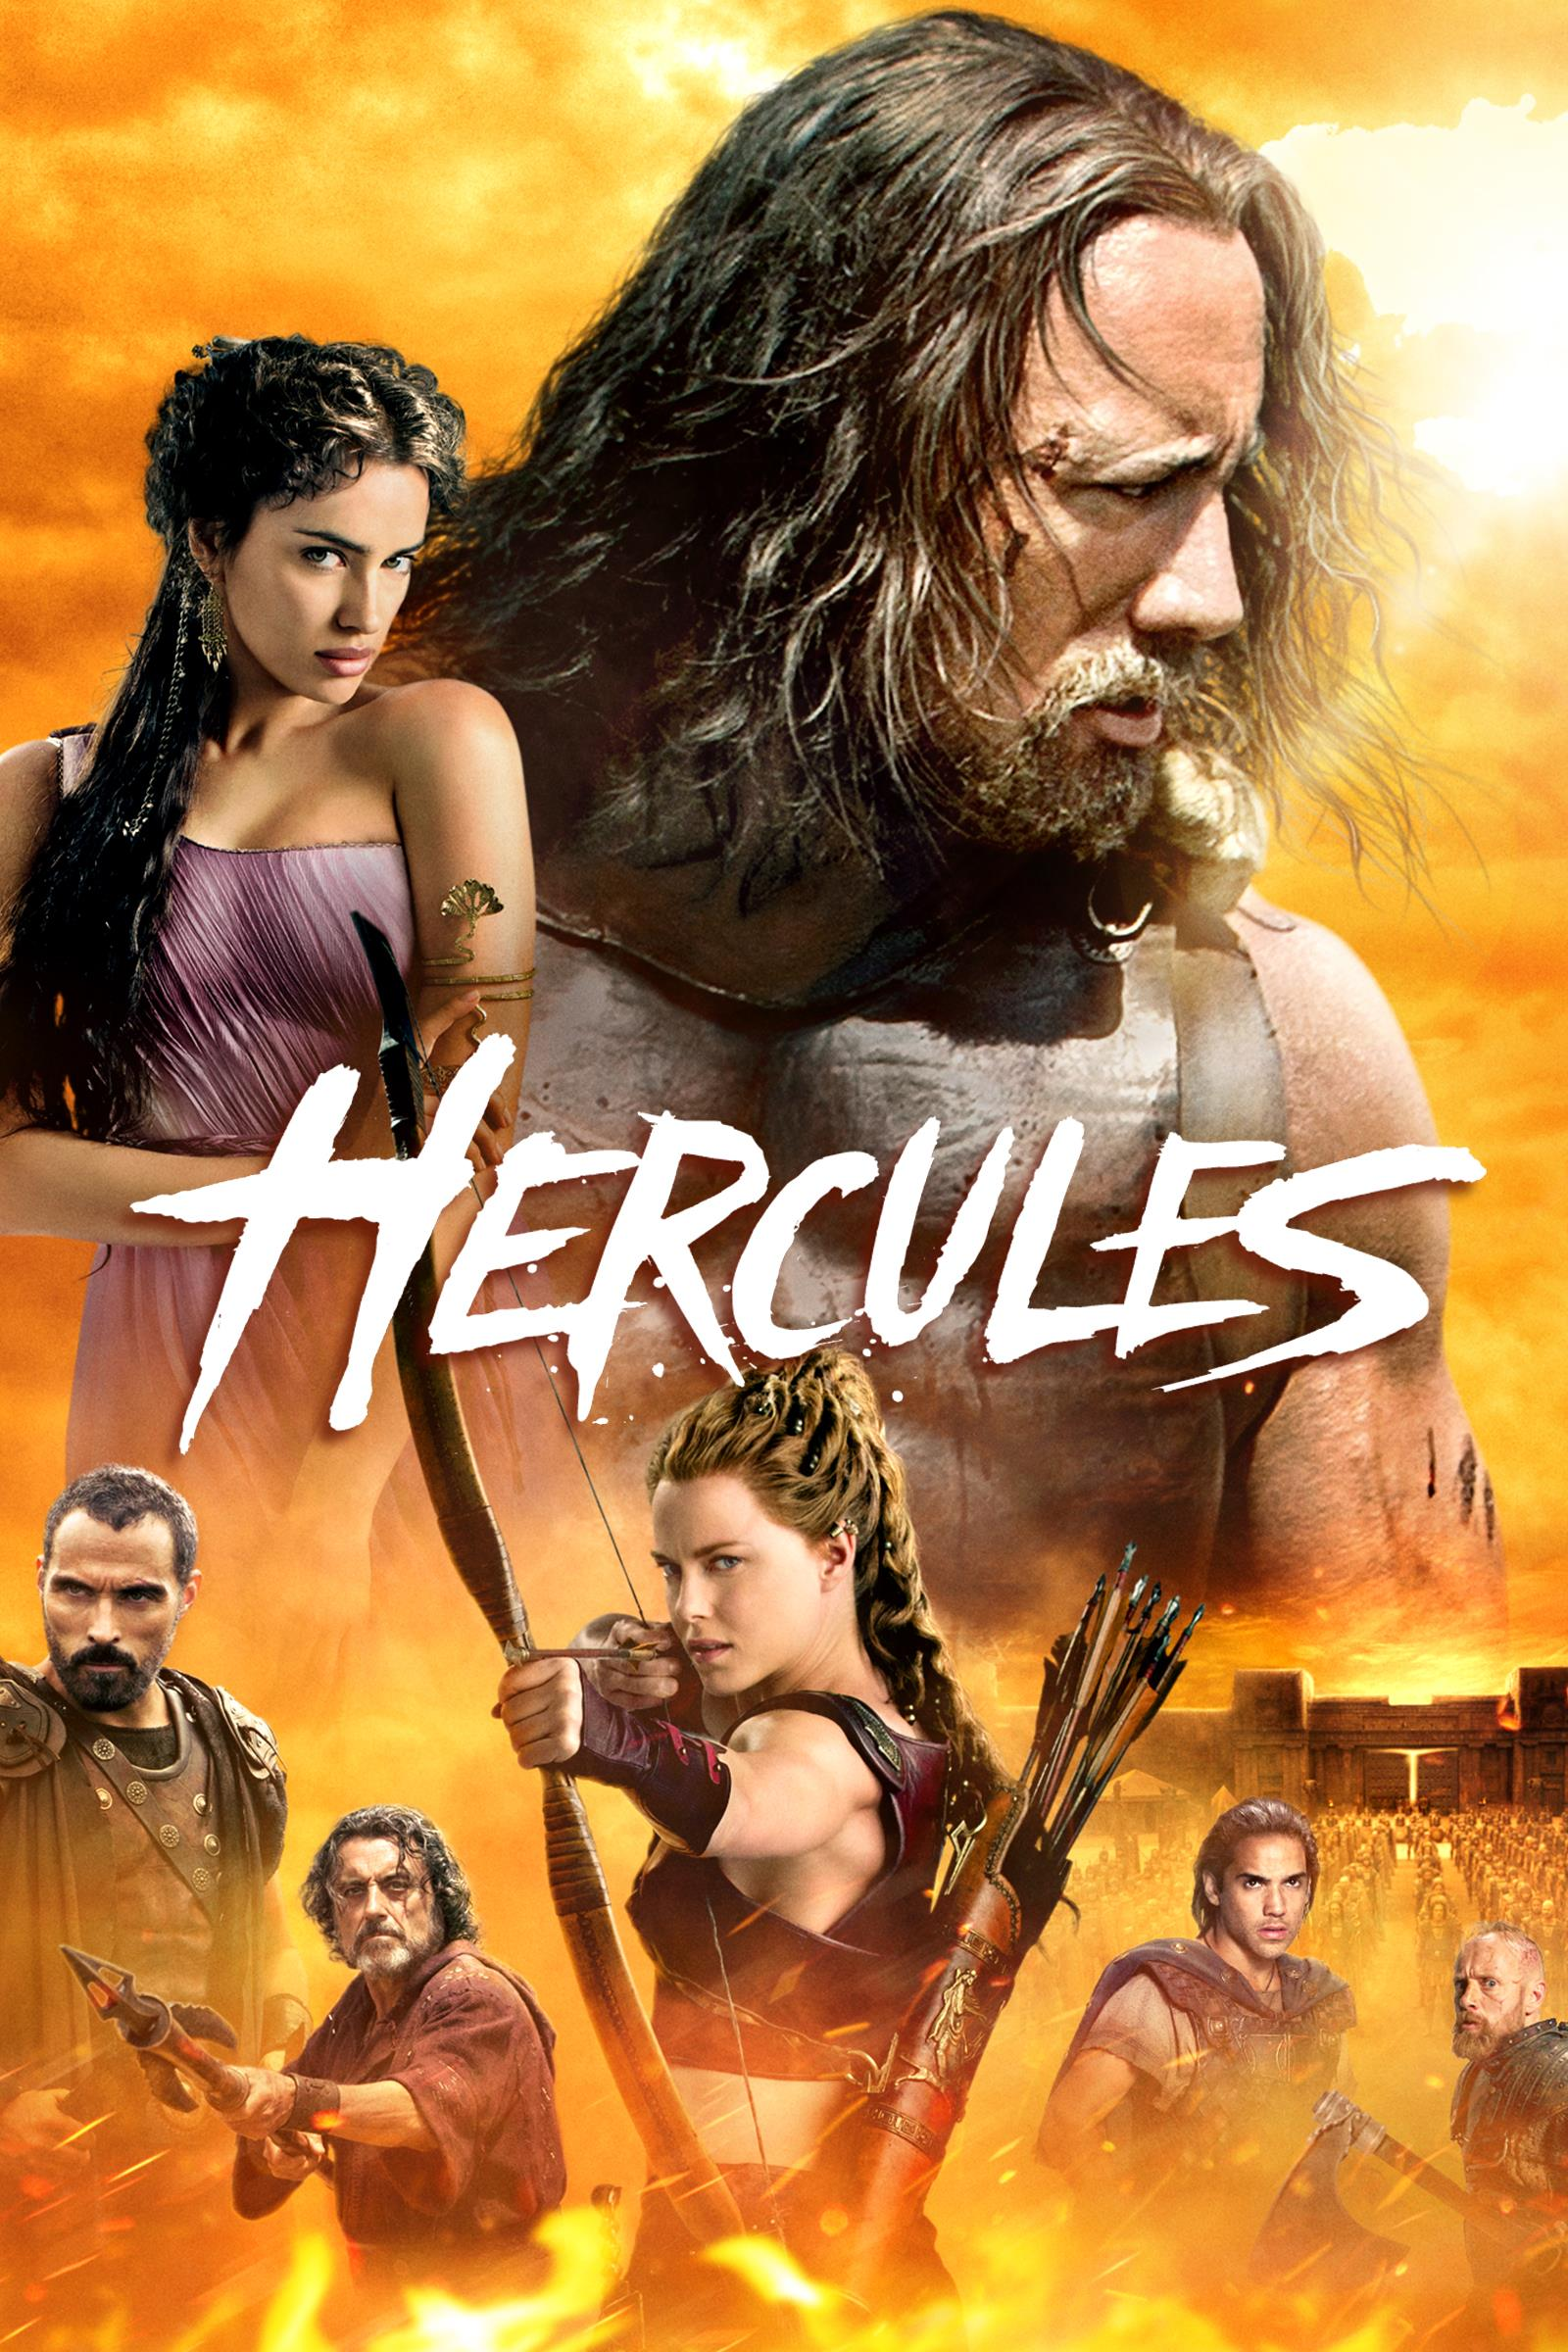 http://www.homesc.com/images/HomeSC/site/on-demand-movies/november-VOD-2014/hercules-2014.jpg